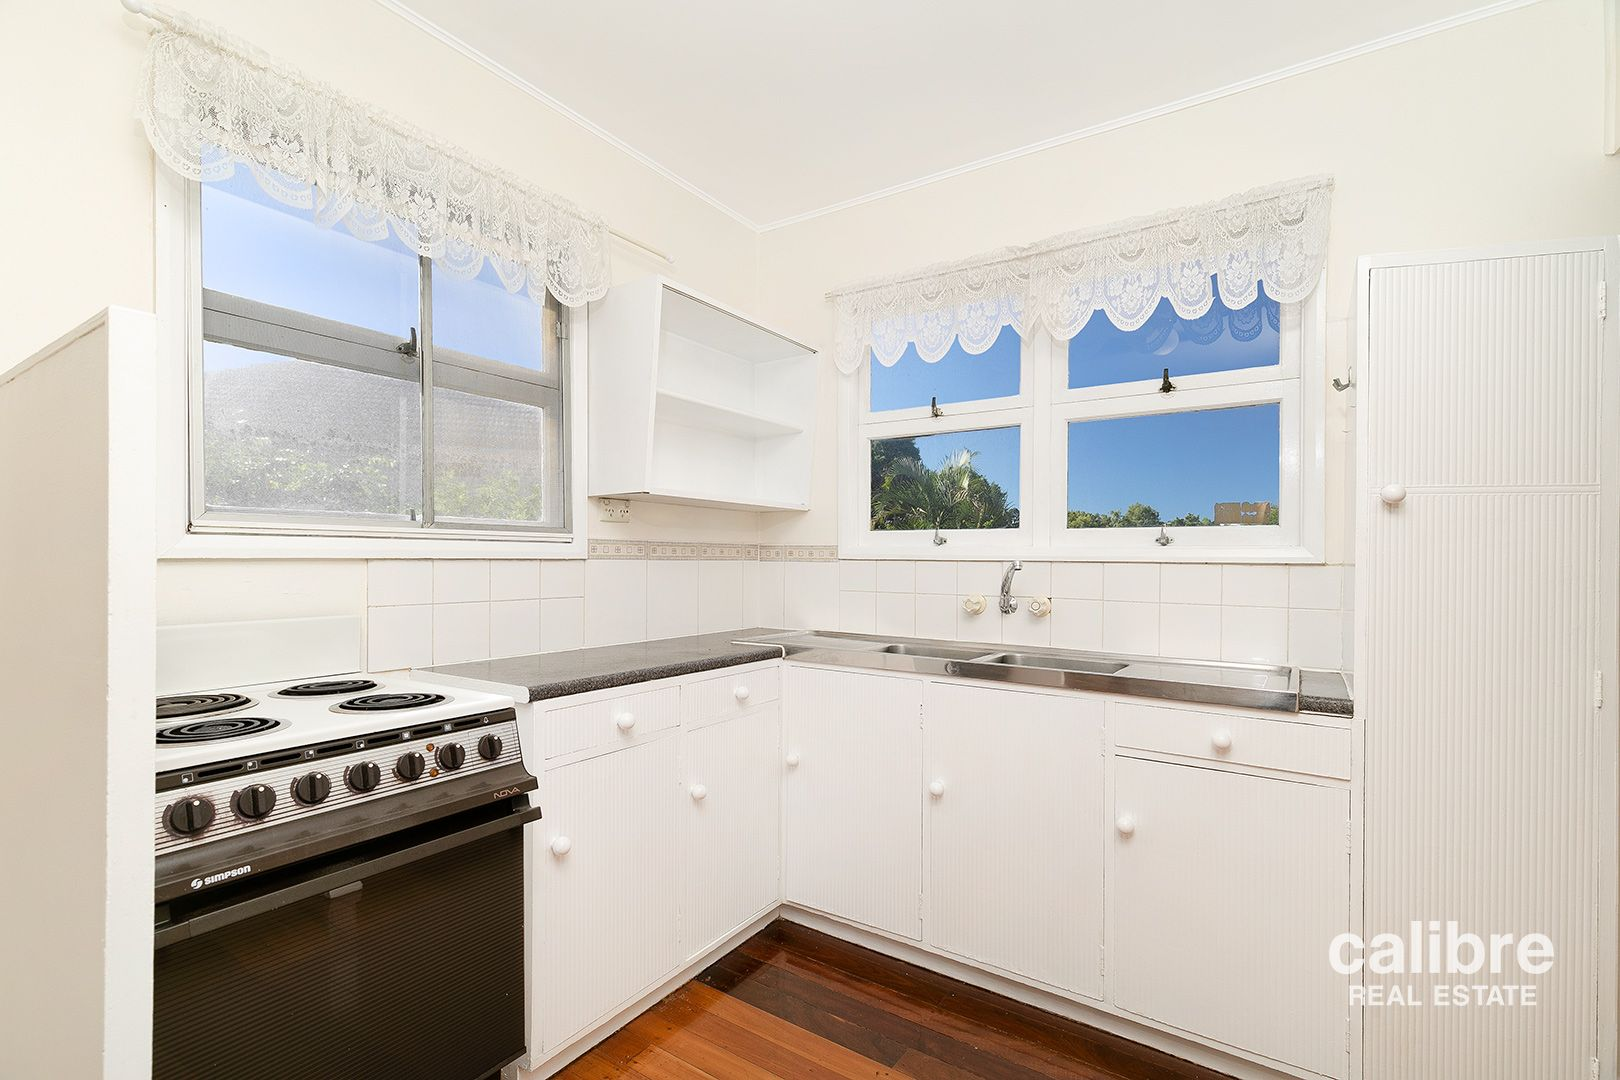 3/55 Cressey Street, Wavell Heights QLD 4012, Image 1